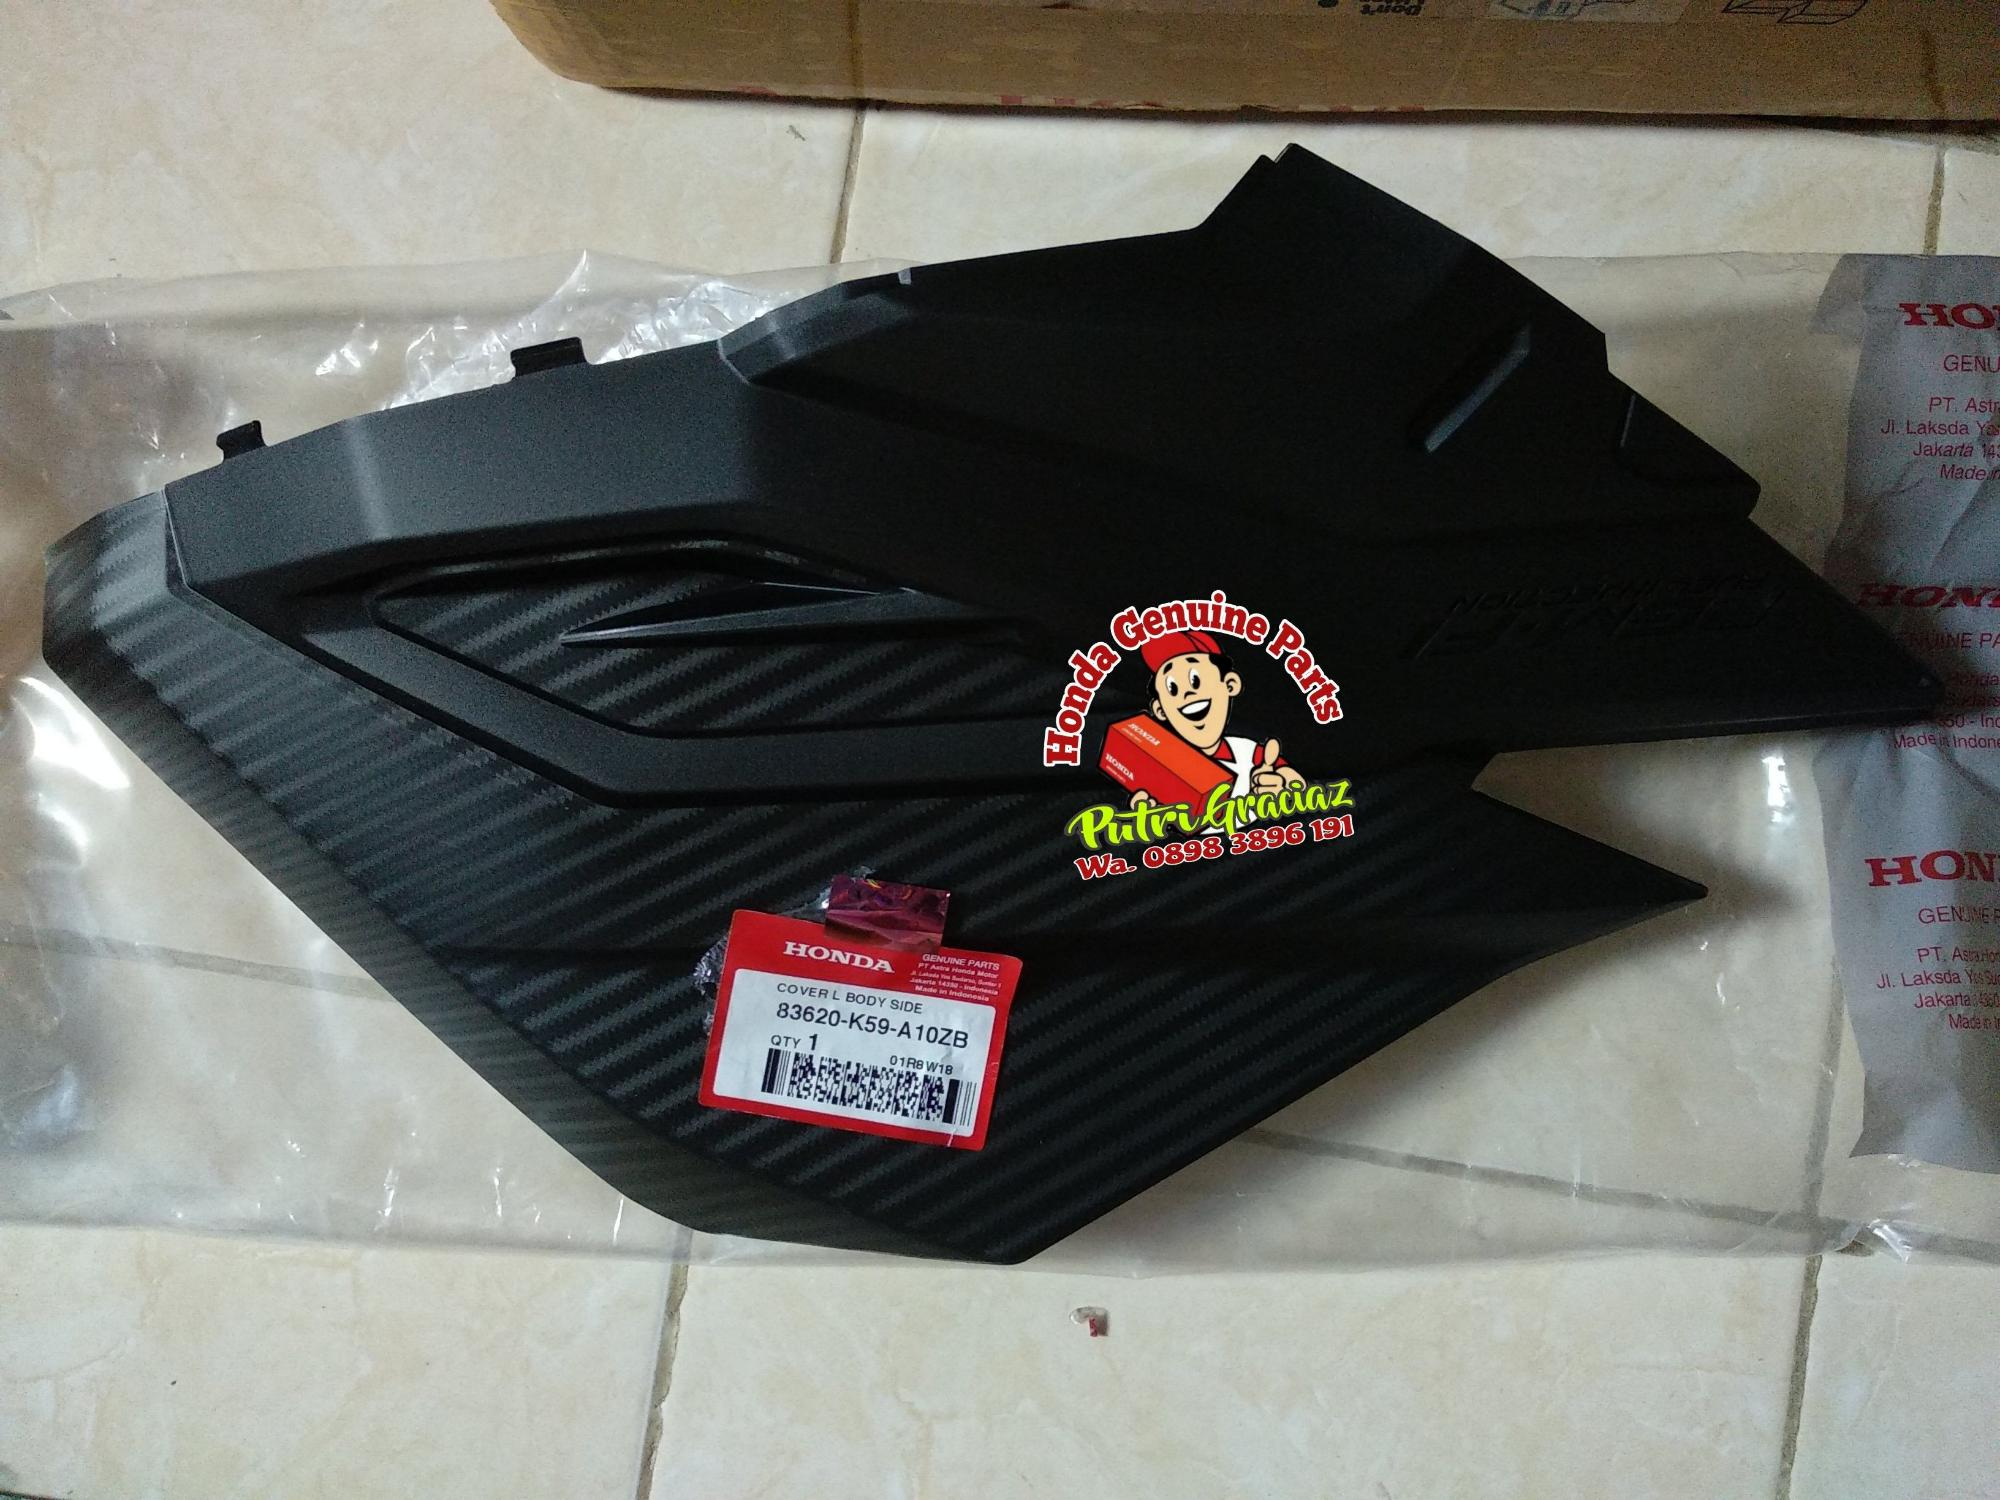 Harga Jual Cover Body Honda Scoopy Karburator Warna Merah Maroon Rr Center Lower Silver Esp K93 83650k93n00zm Rp 58000 L